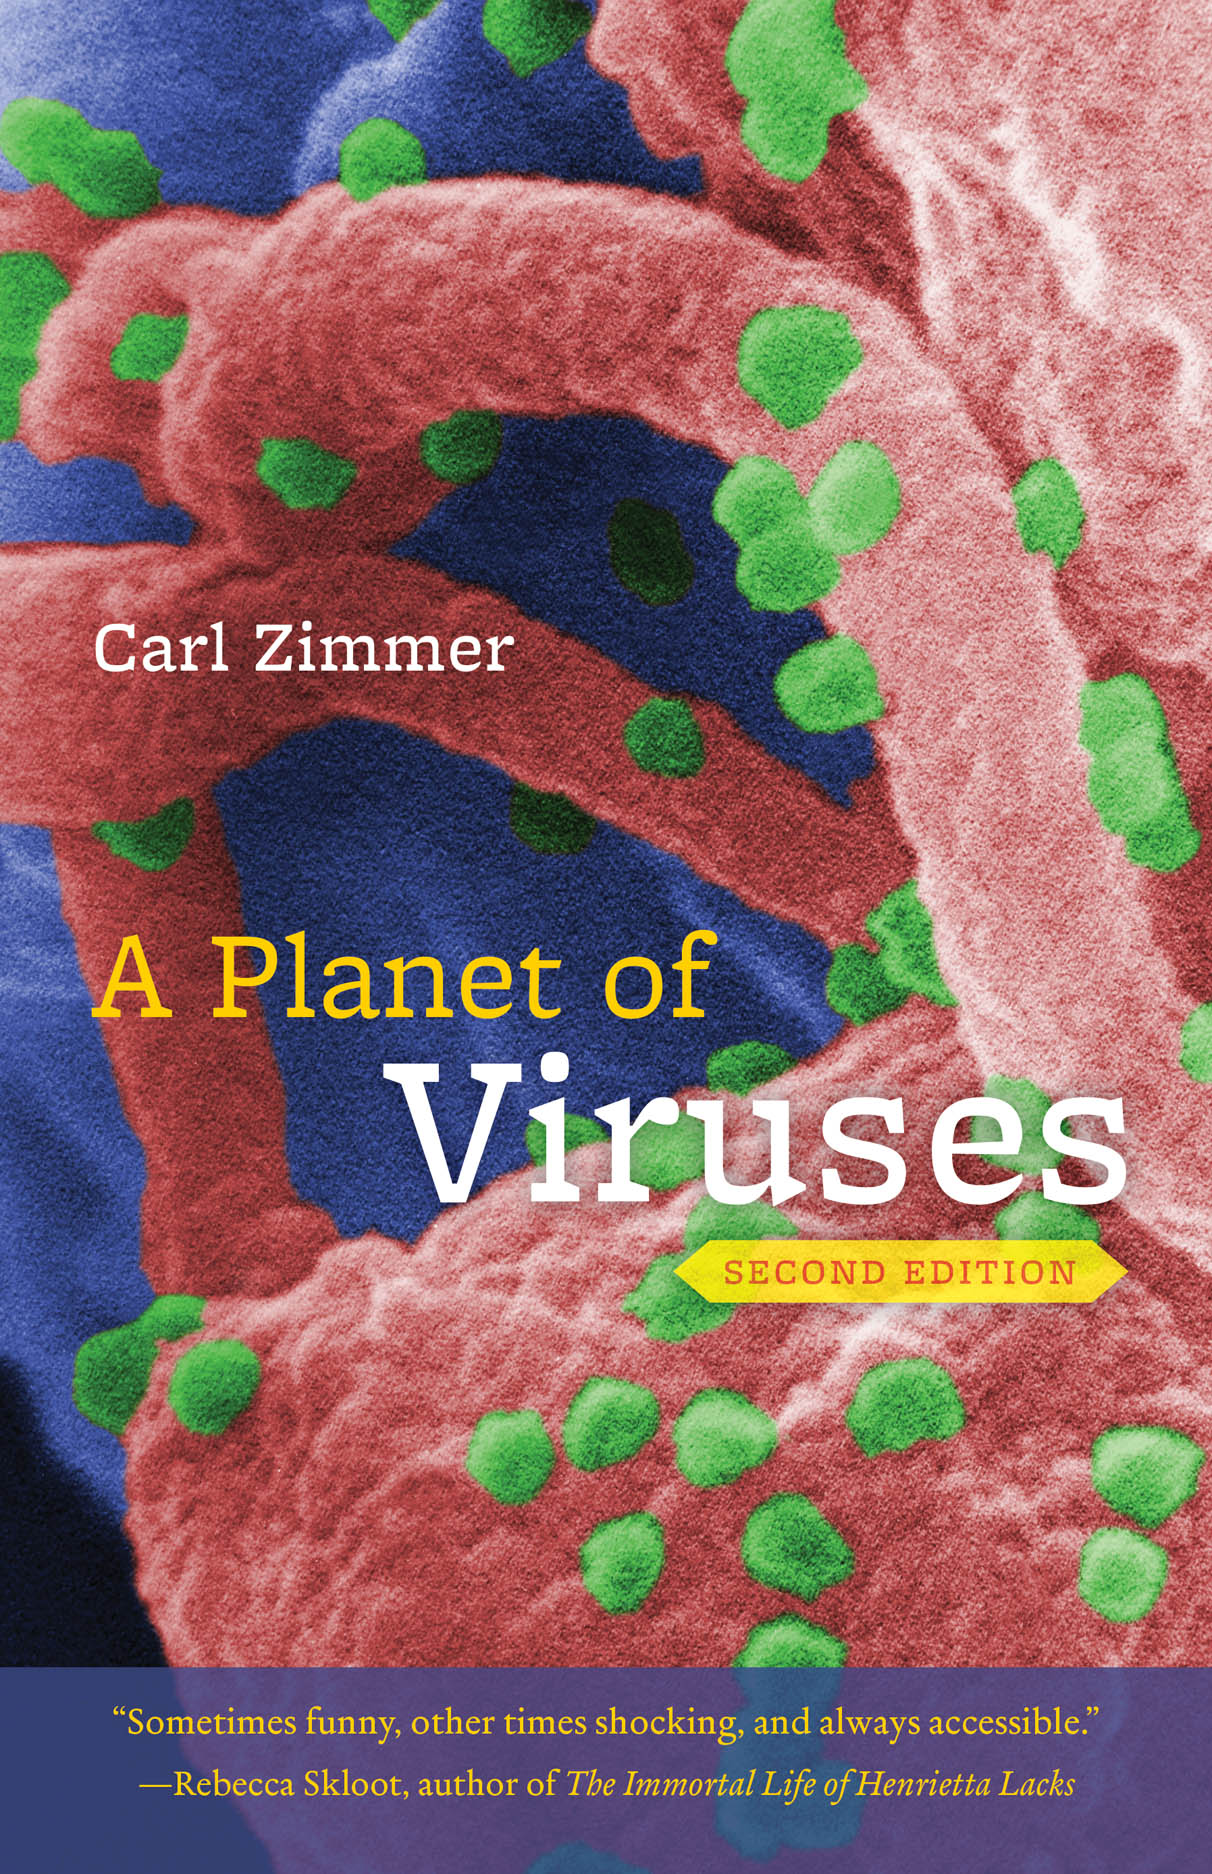 A Planet of Viruses: Second Edition